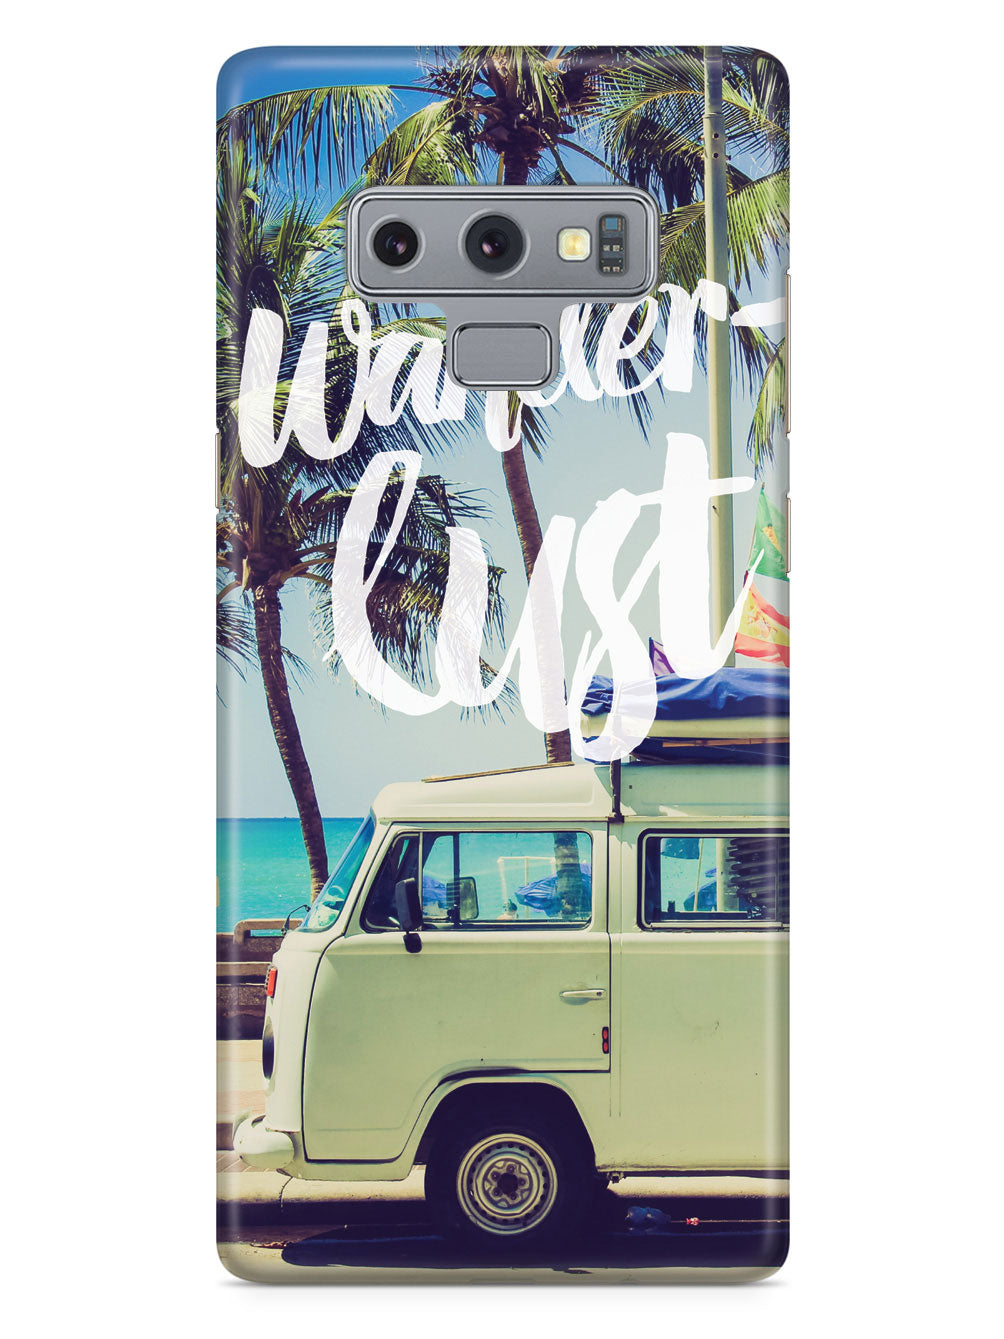 Wanderlust - Travel the World Case